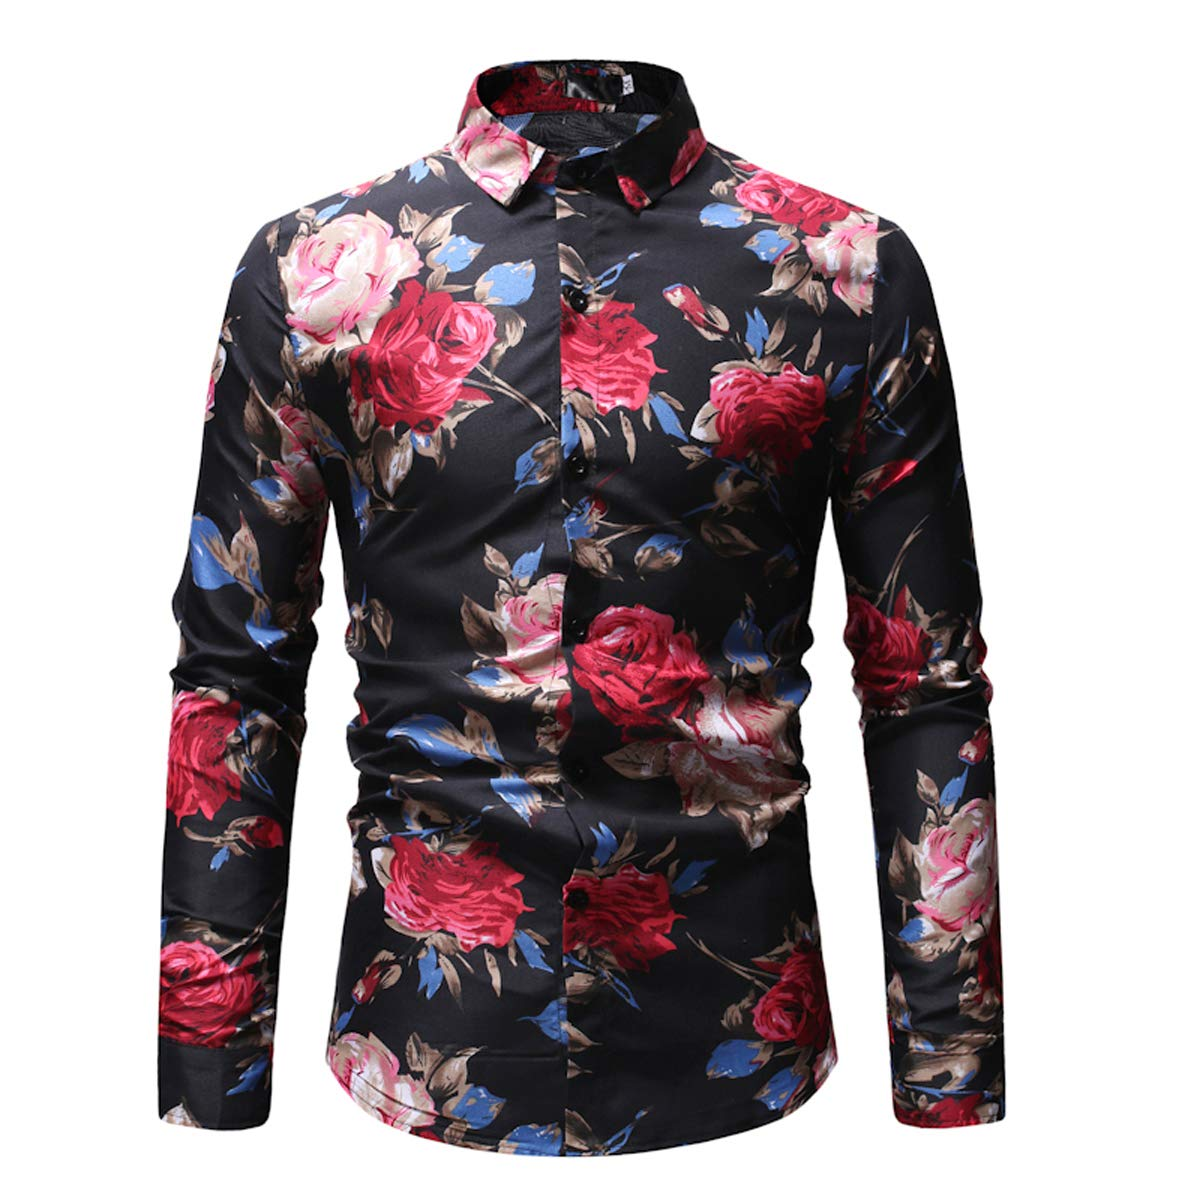 Mens Printed Lapel Button Down Shirt Top Long Sleeve Slim Fit Casual Blouse